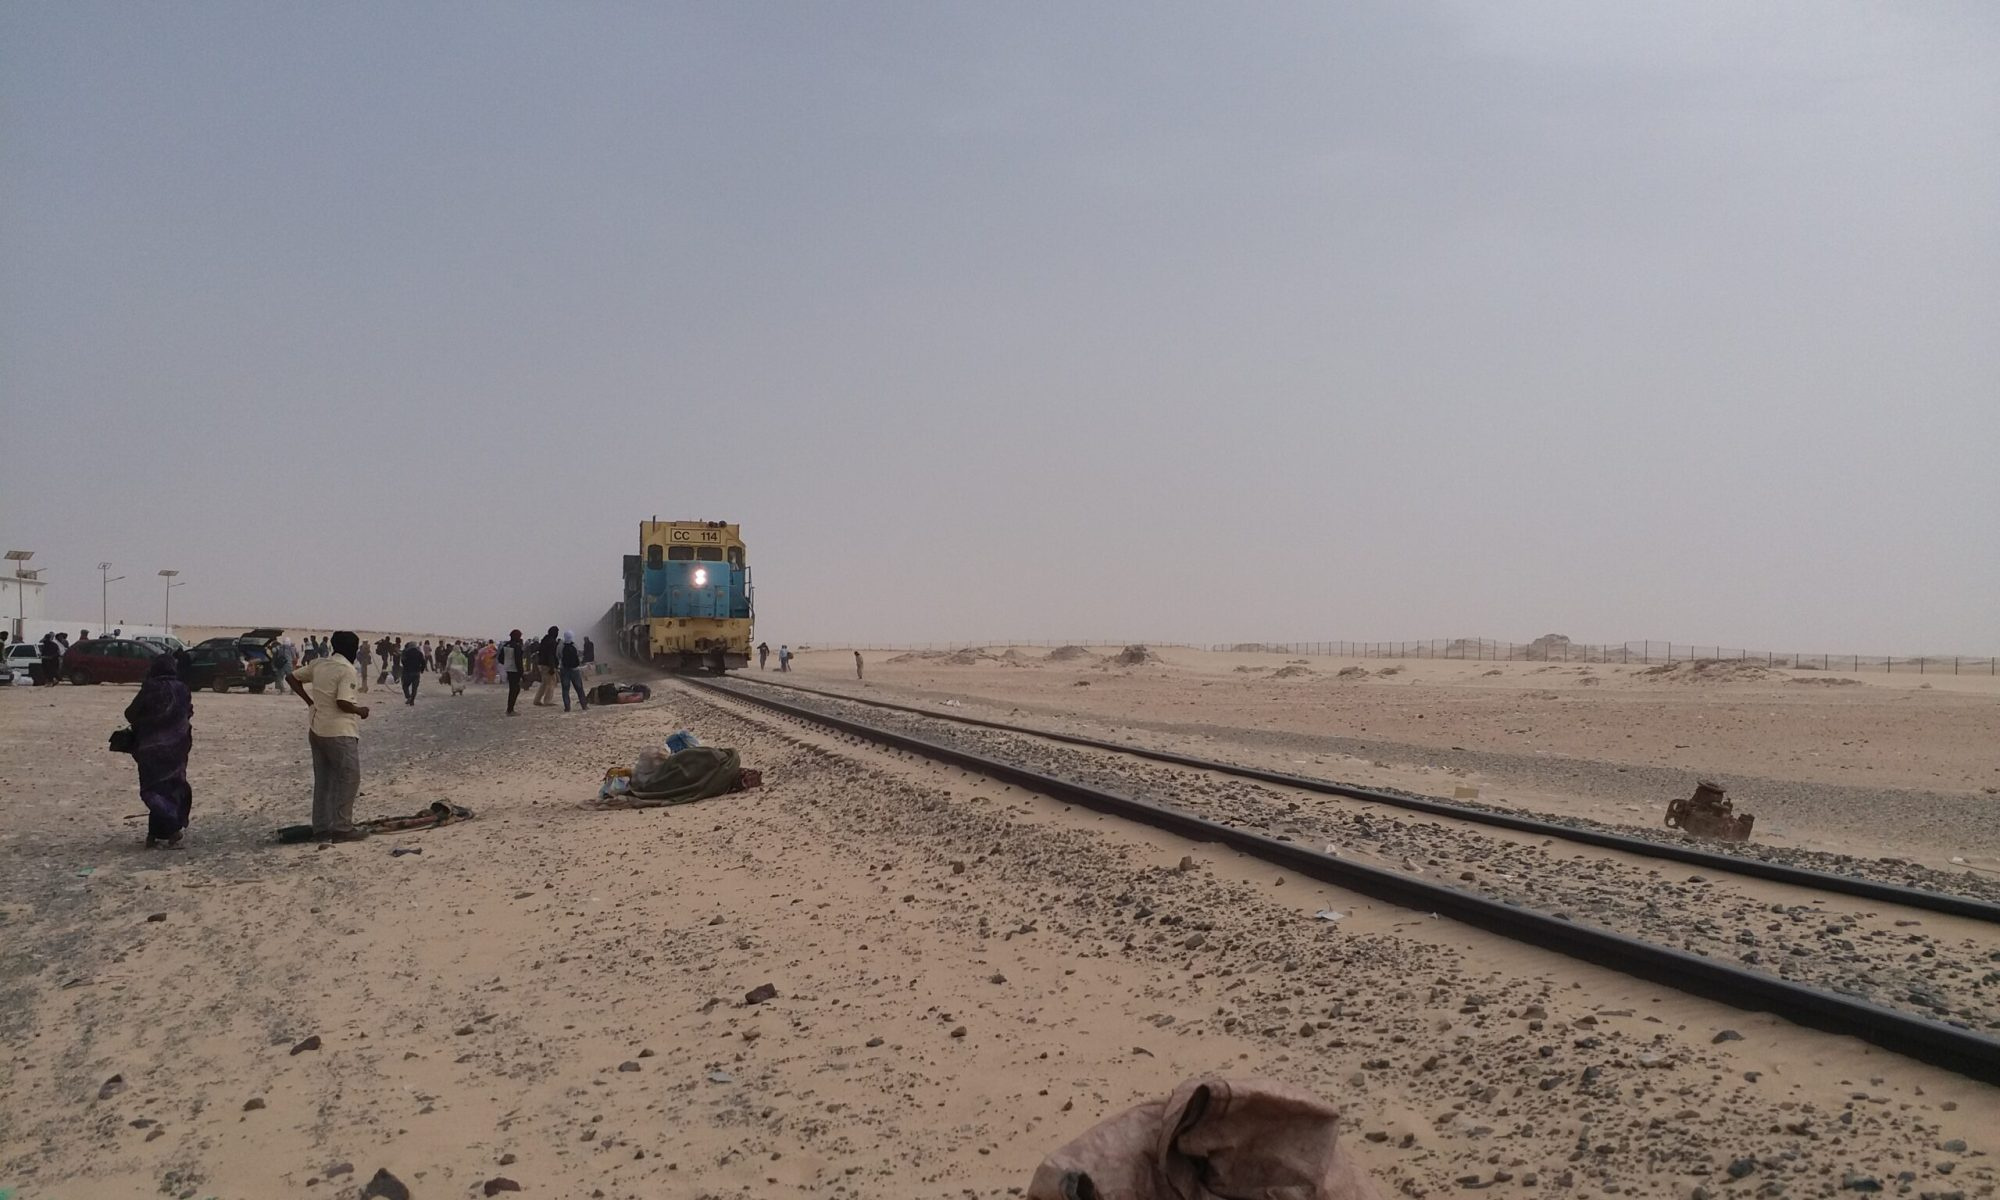 The Iron Train, Nouadhibou, Mauritania